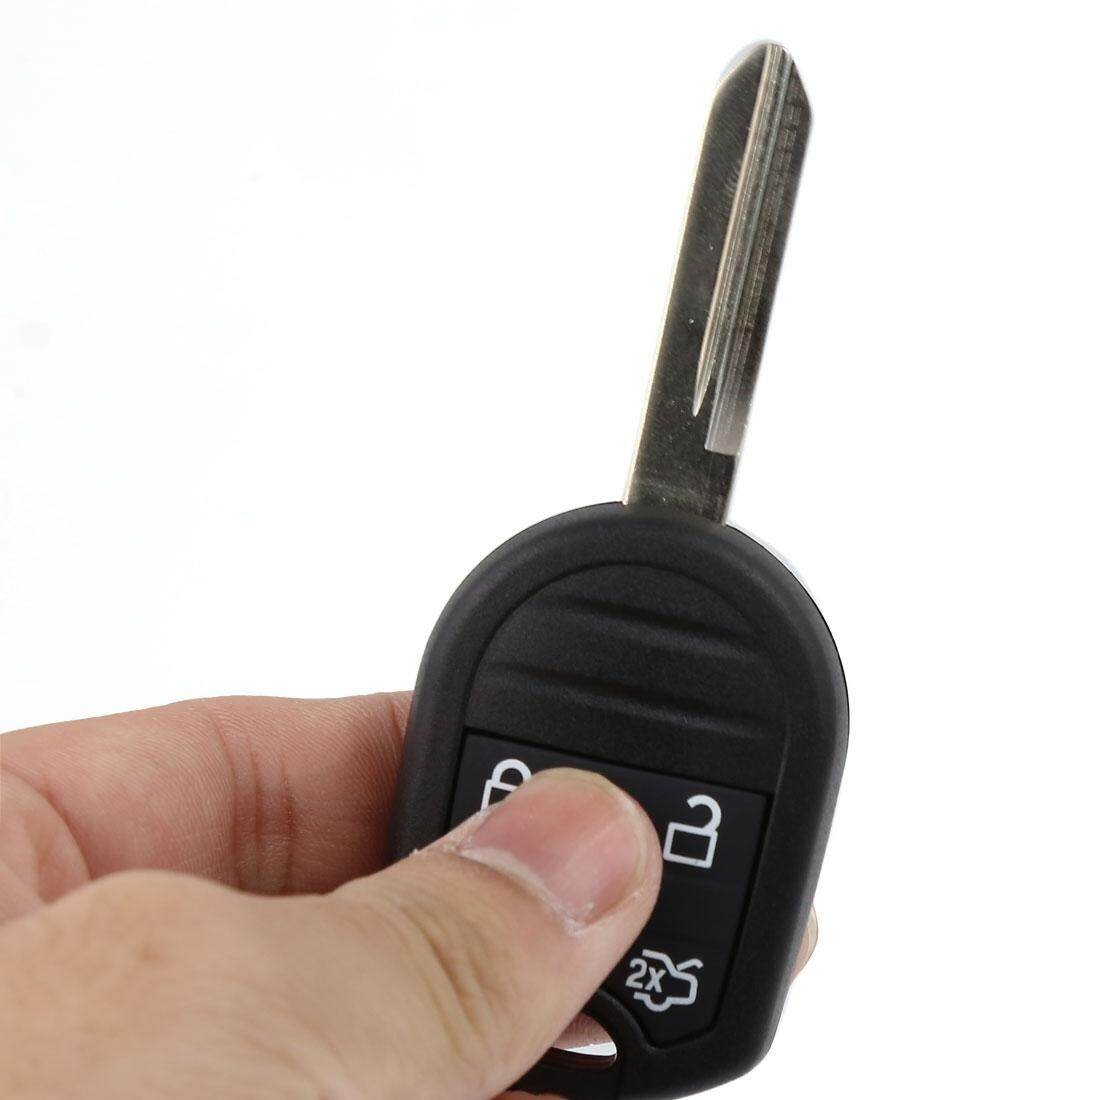 4 Buttons Replacement For Ford Cwtwb1u793 Keyless Entry Remote Start Starter Control Car Key Fob